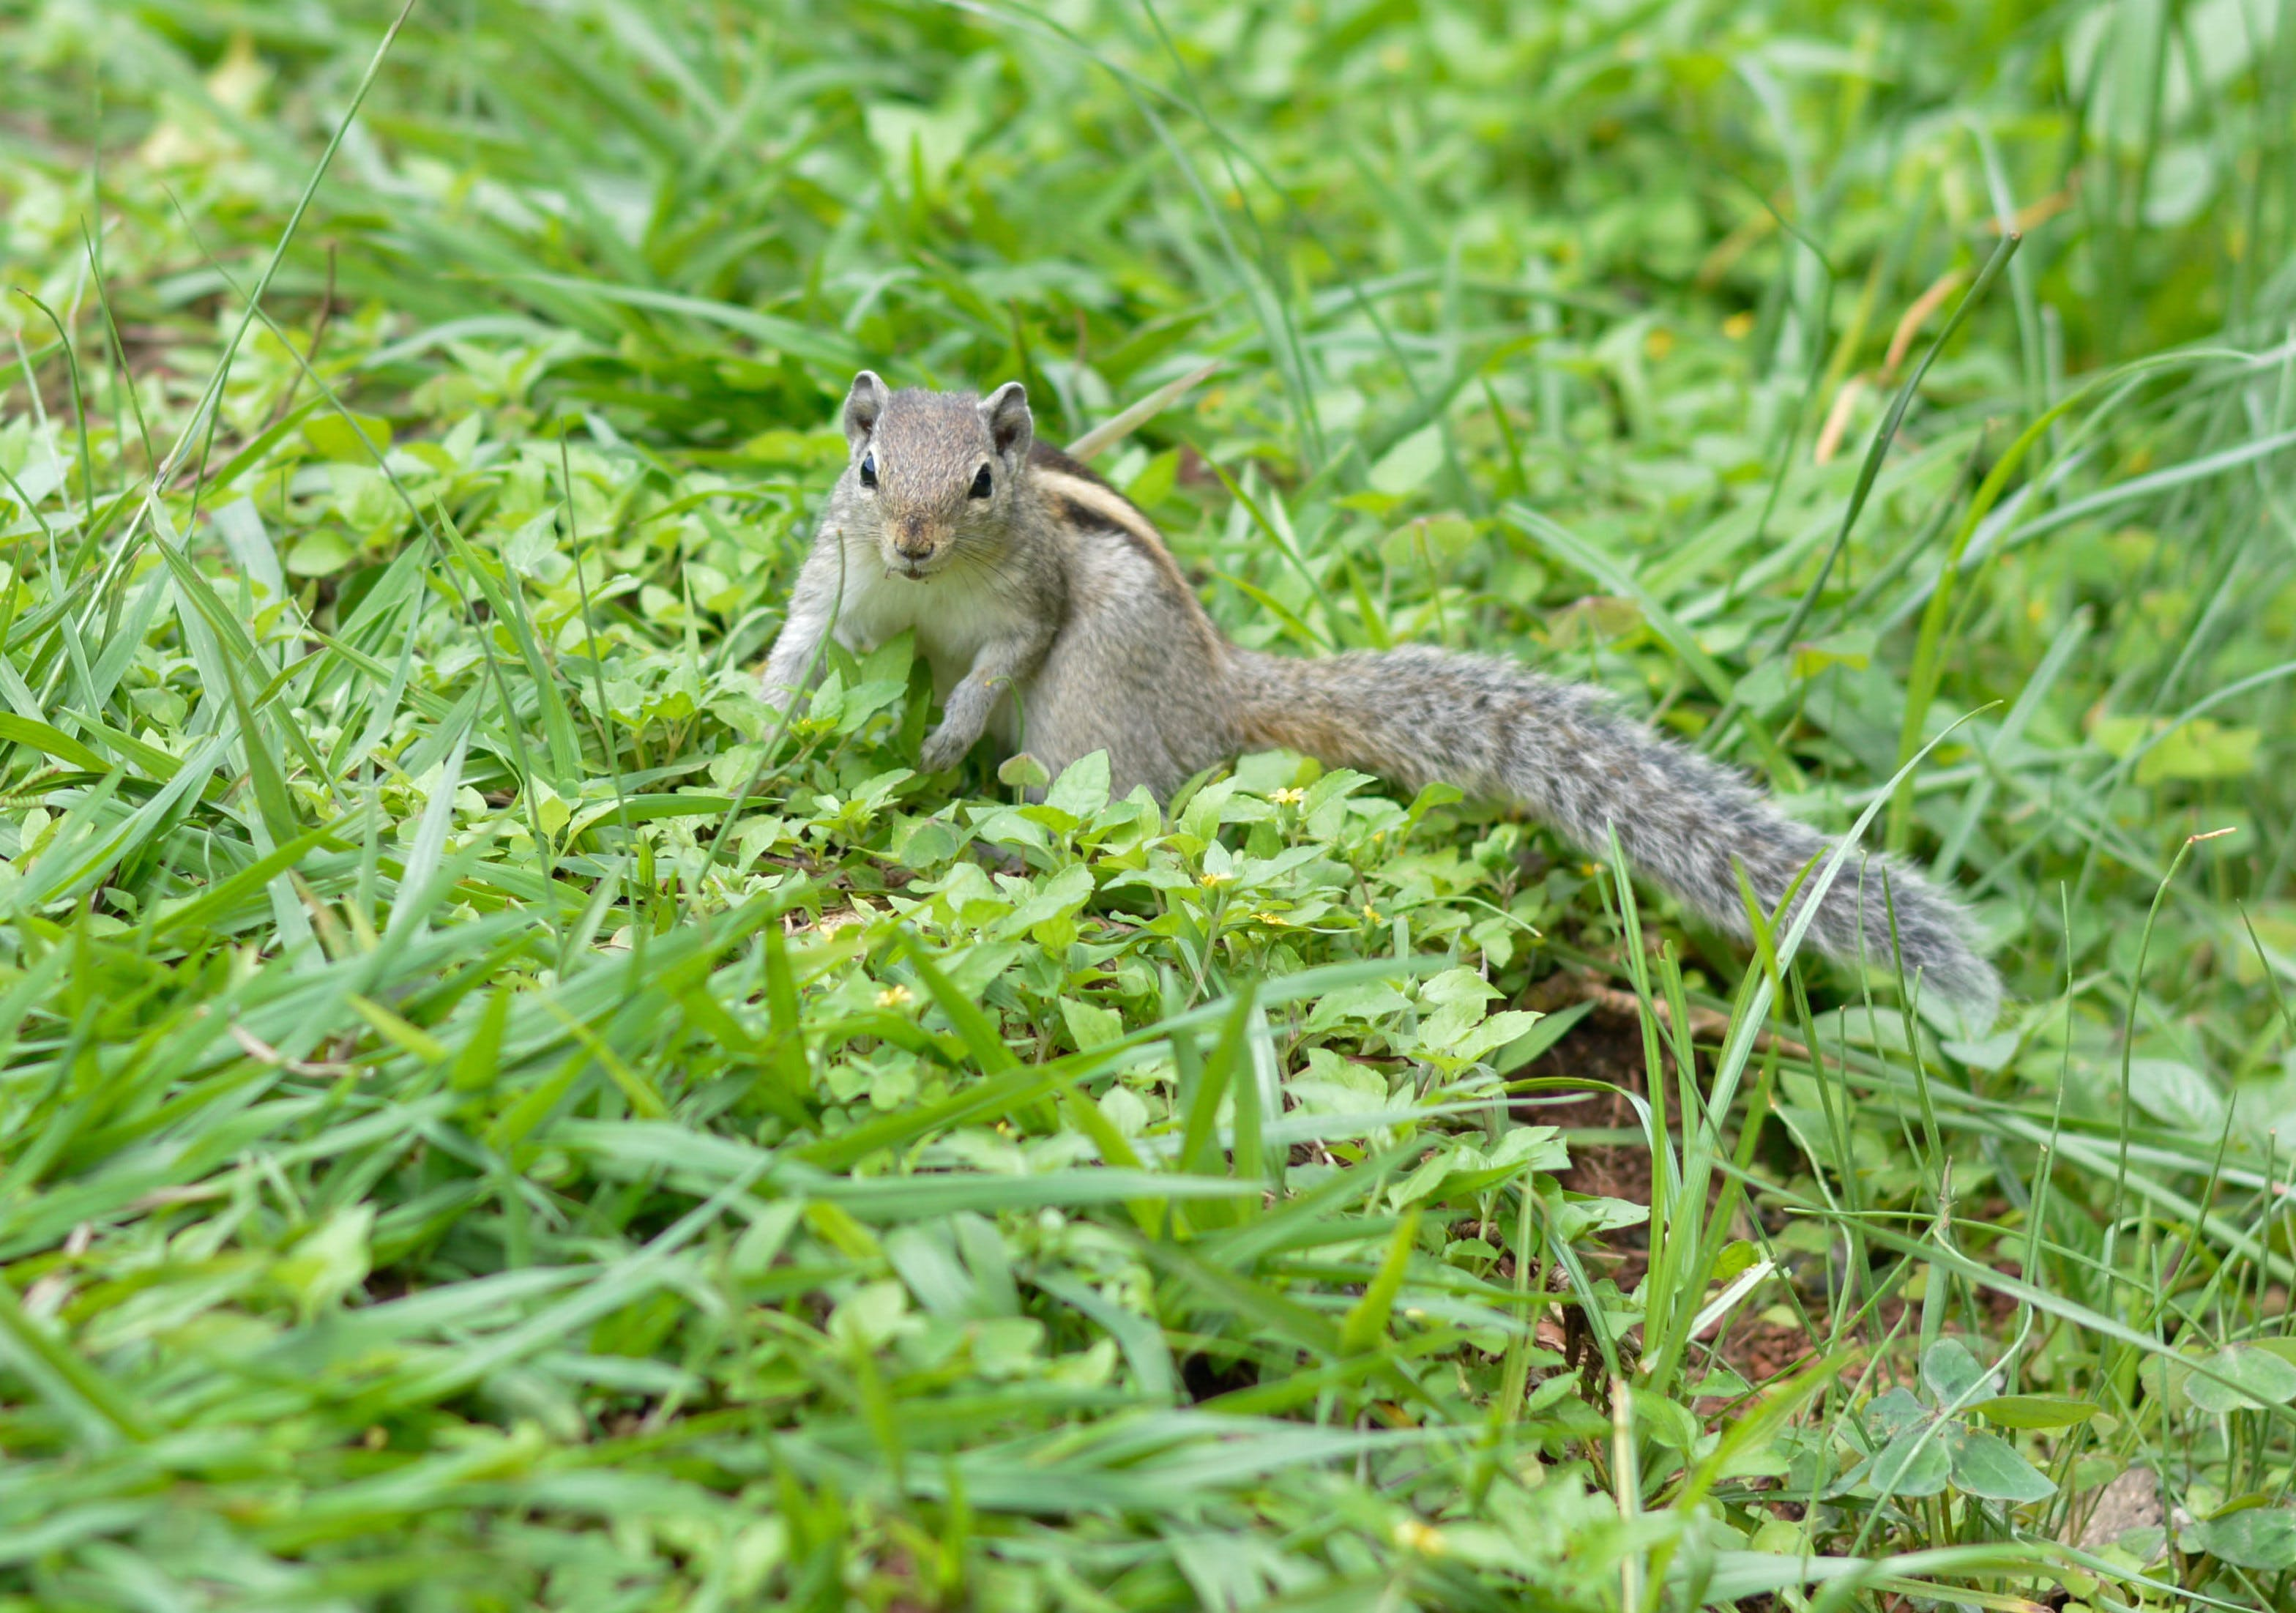 Shallow Focus Photography of Gray Squirrel on Grass